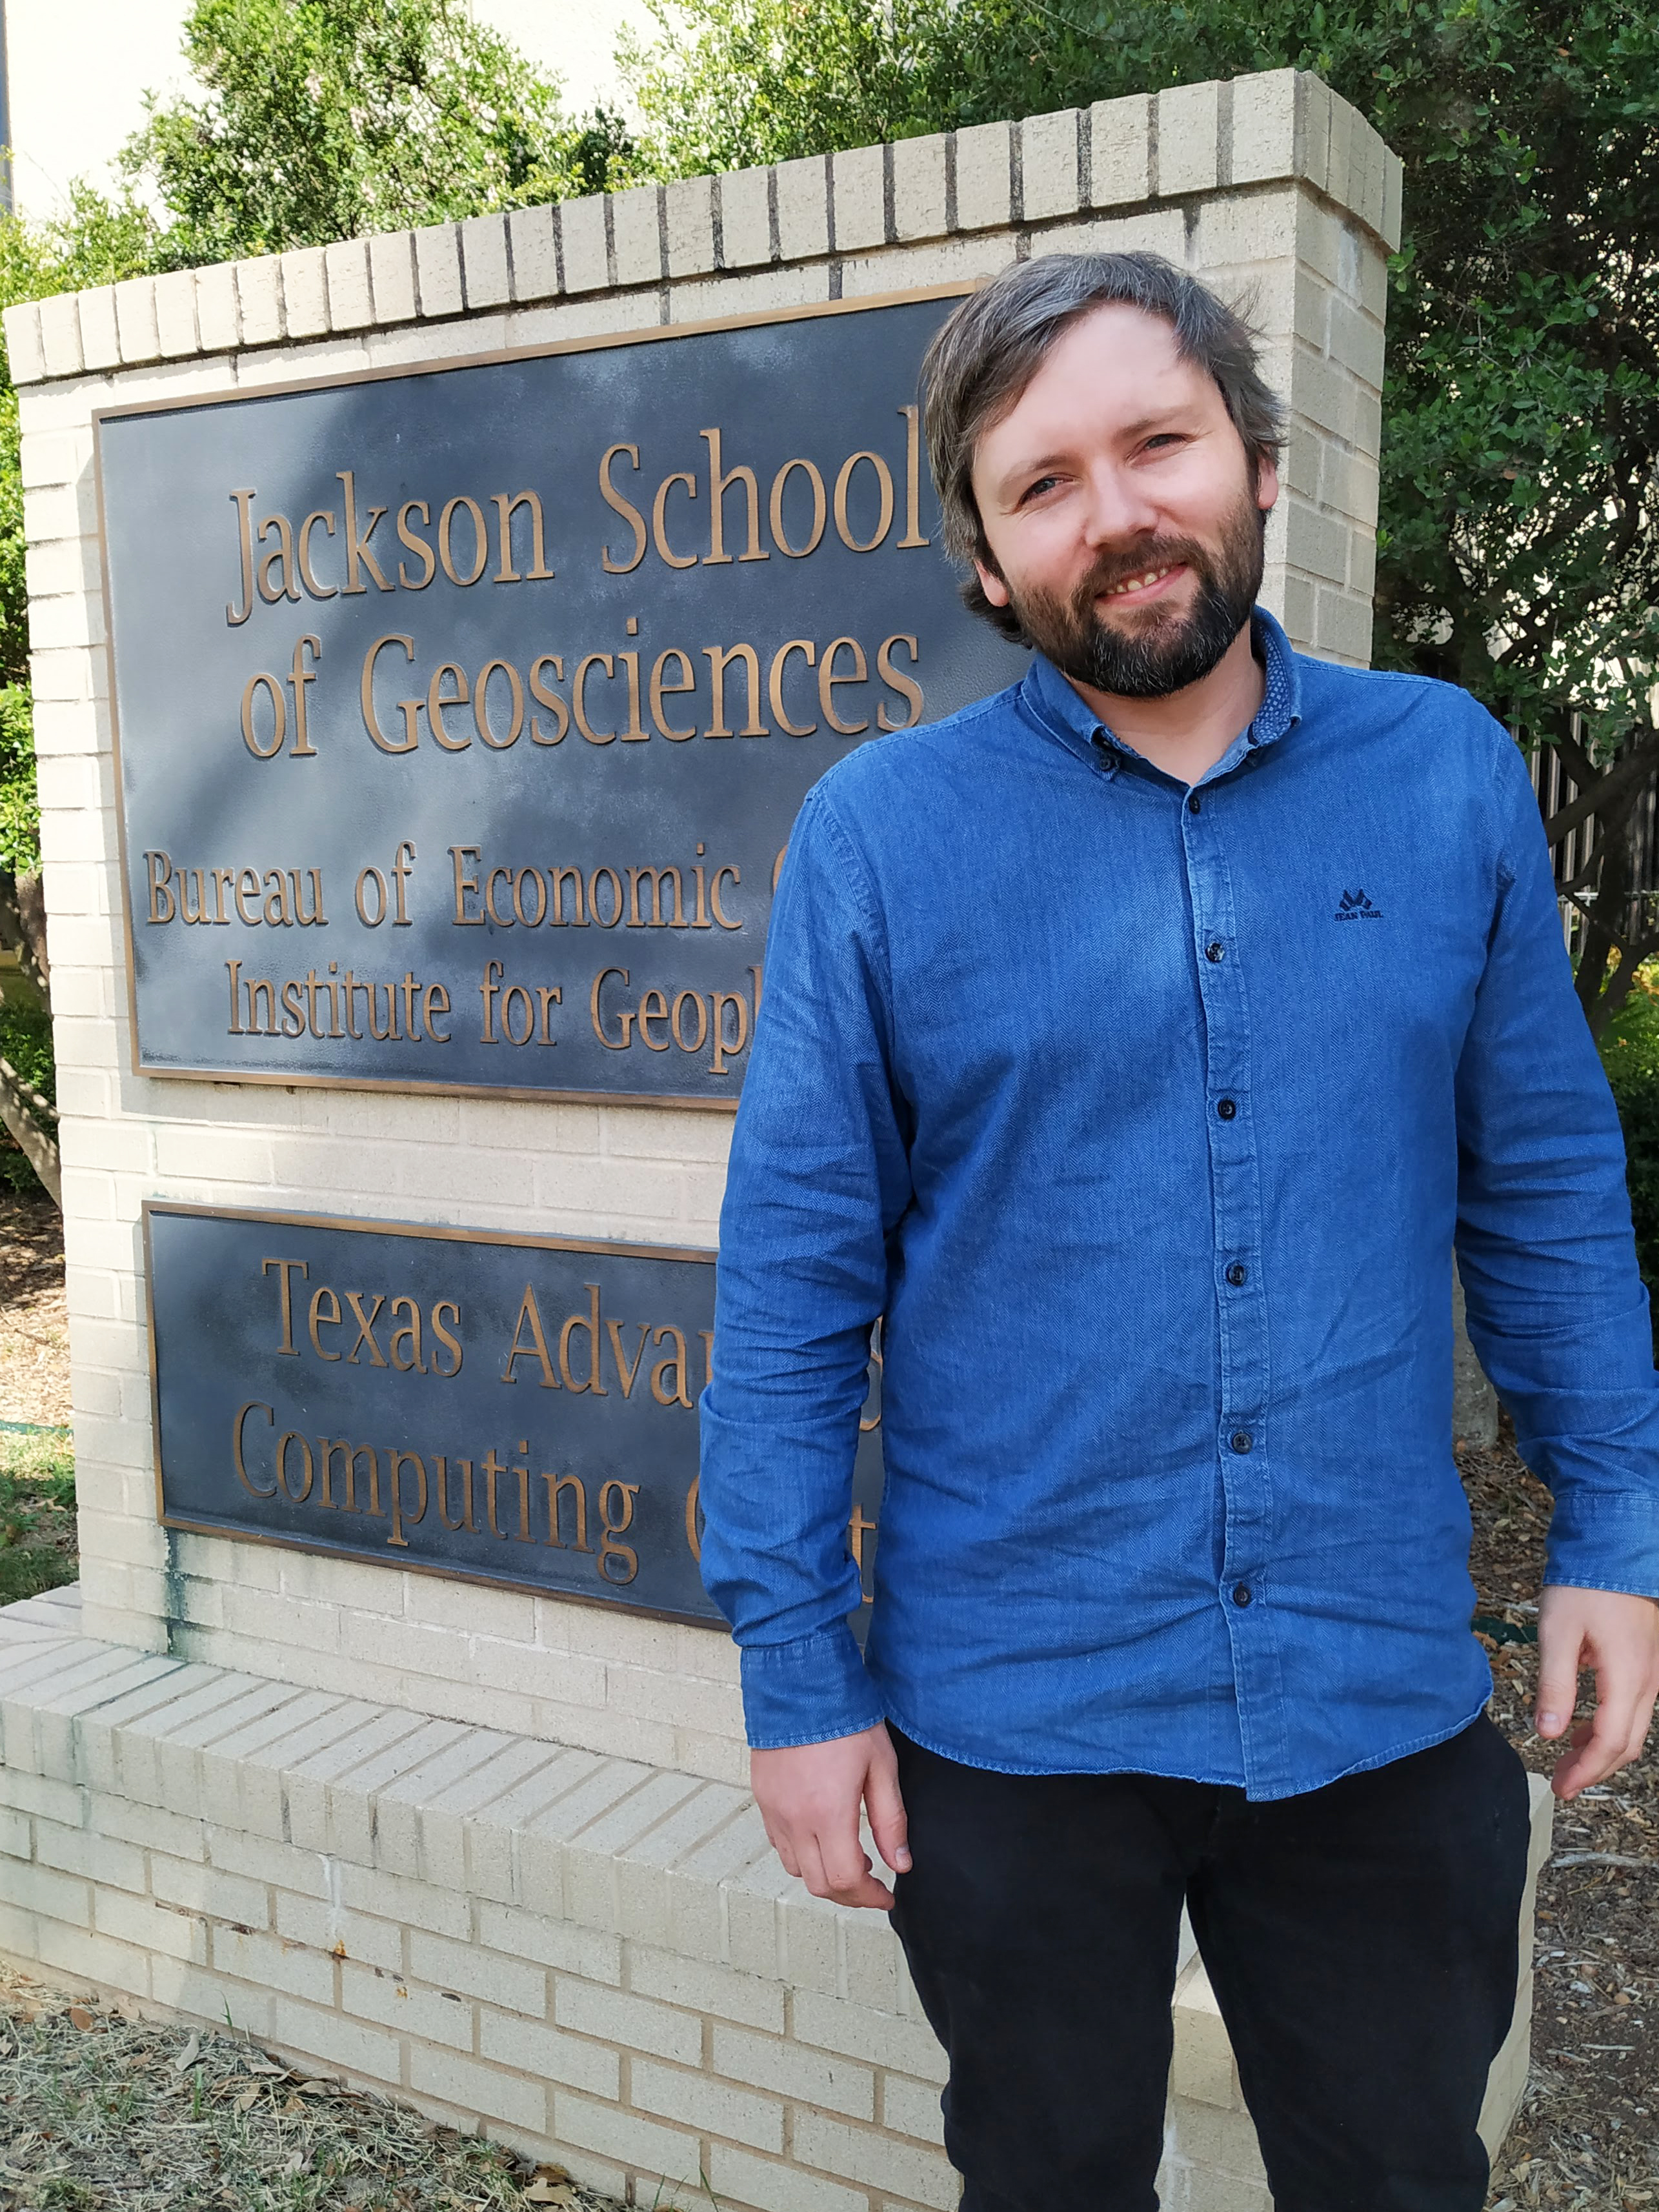 Kristian stands in front of the Jackson School of Geosciences/Bureau of Economic Geology sign in front of the building